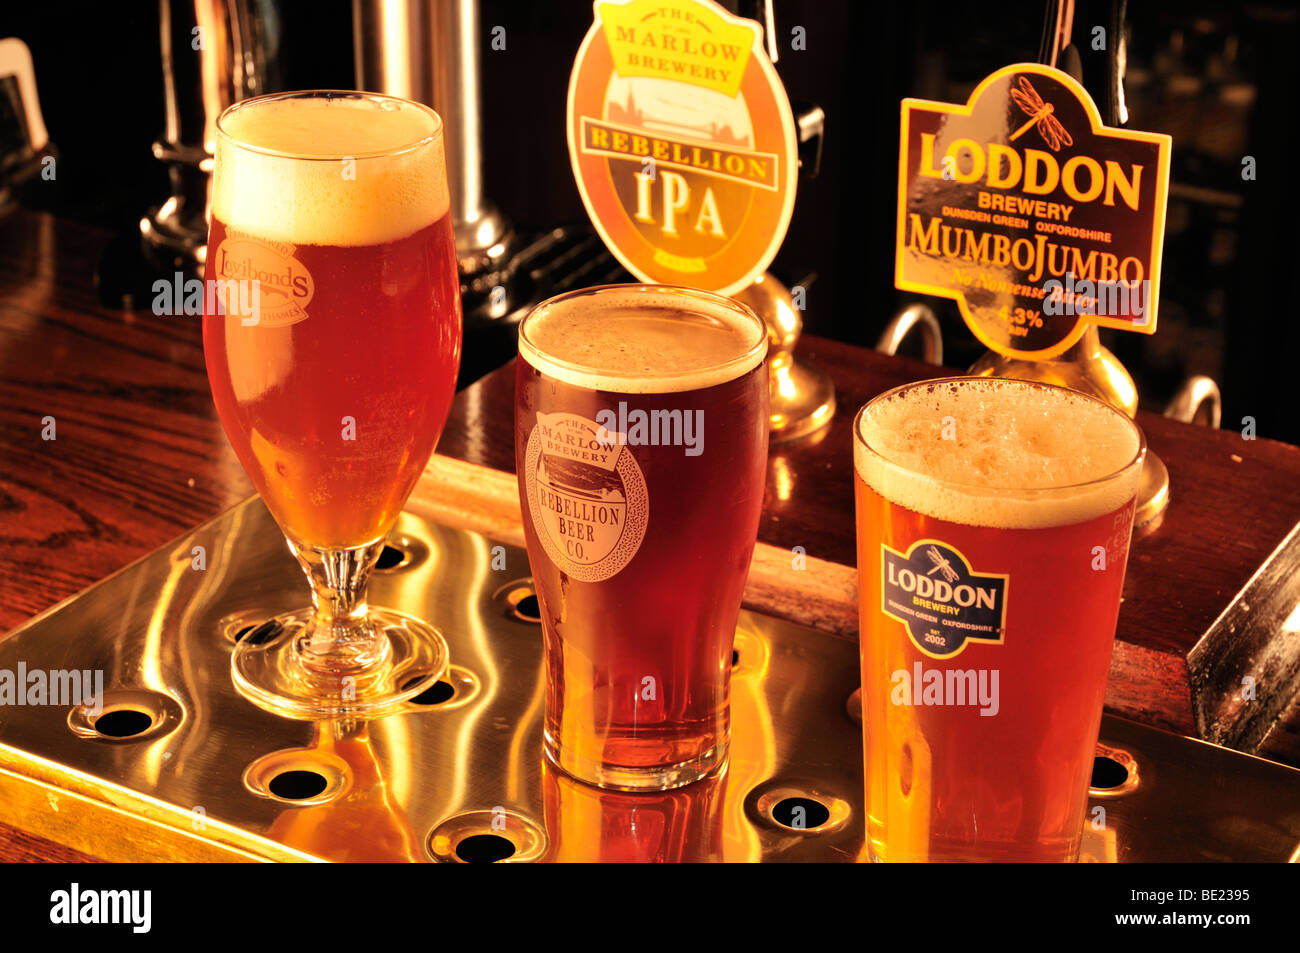 Local brewery beers at the Red Lyon pub, Hurley, Berkshire, UK - Stock Image